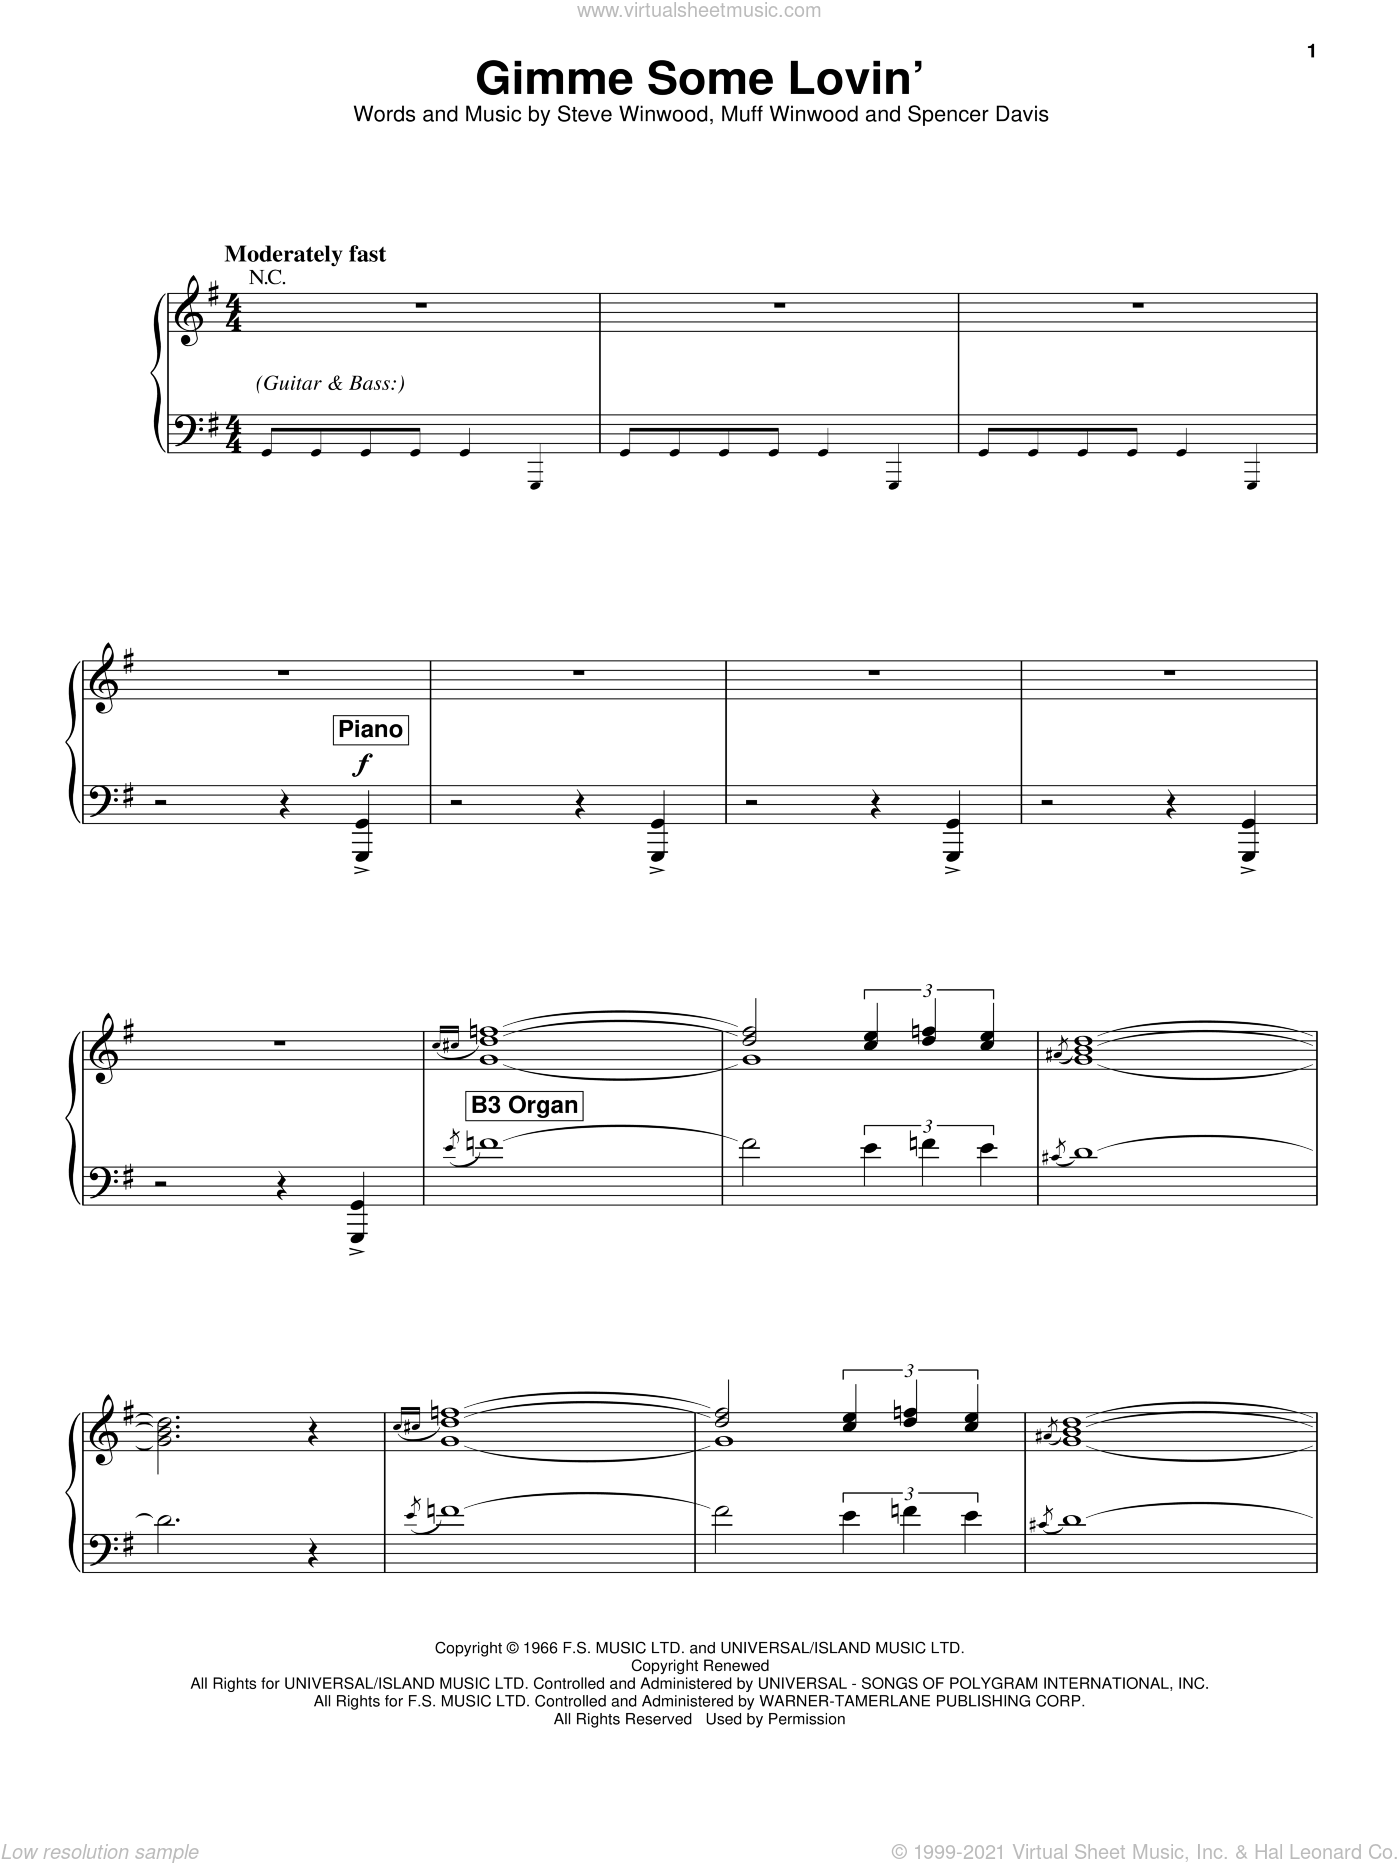 Gimme Some Lovin' sheet music for voice and piano by The Spencer Davis Group, Muff Winwood, Spencer Davis and Steve Winwood, intermediate skill level